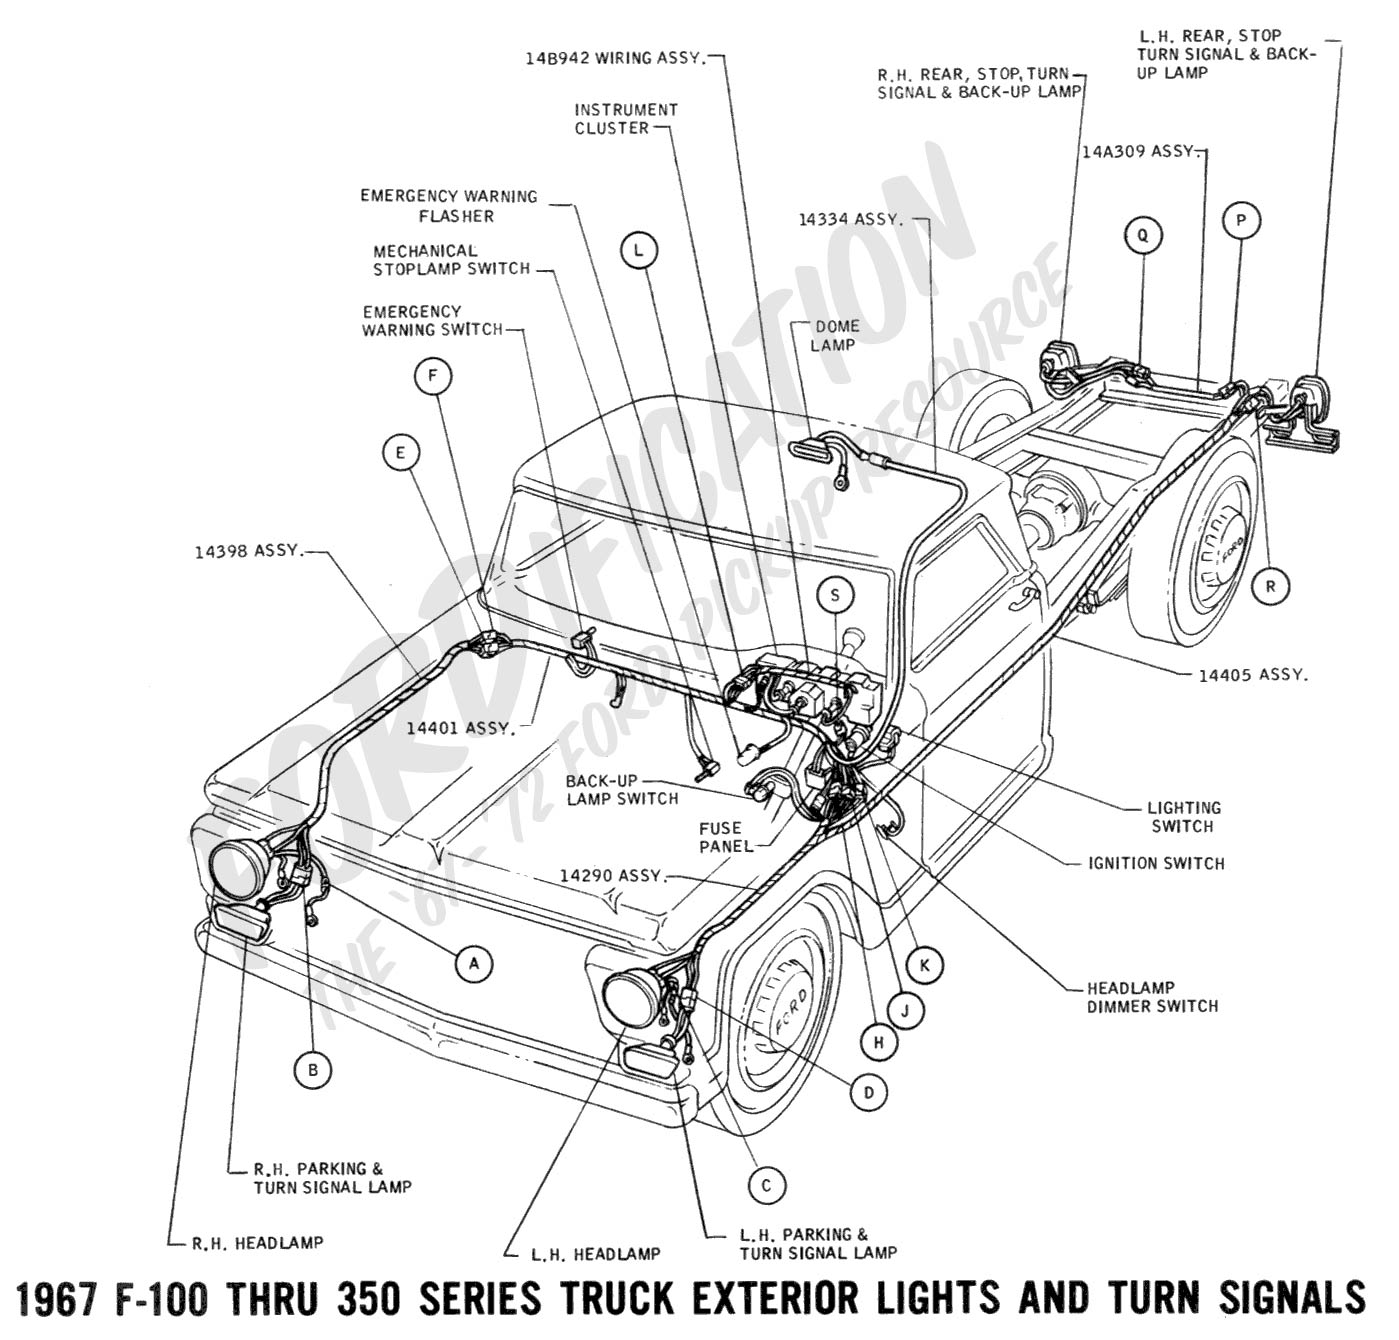 wiring 1967extlights01 ford truck technical drawings and schematics section h wiring 2013 Ford F350 Wiring Diagram at panicattacktreatment.co